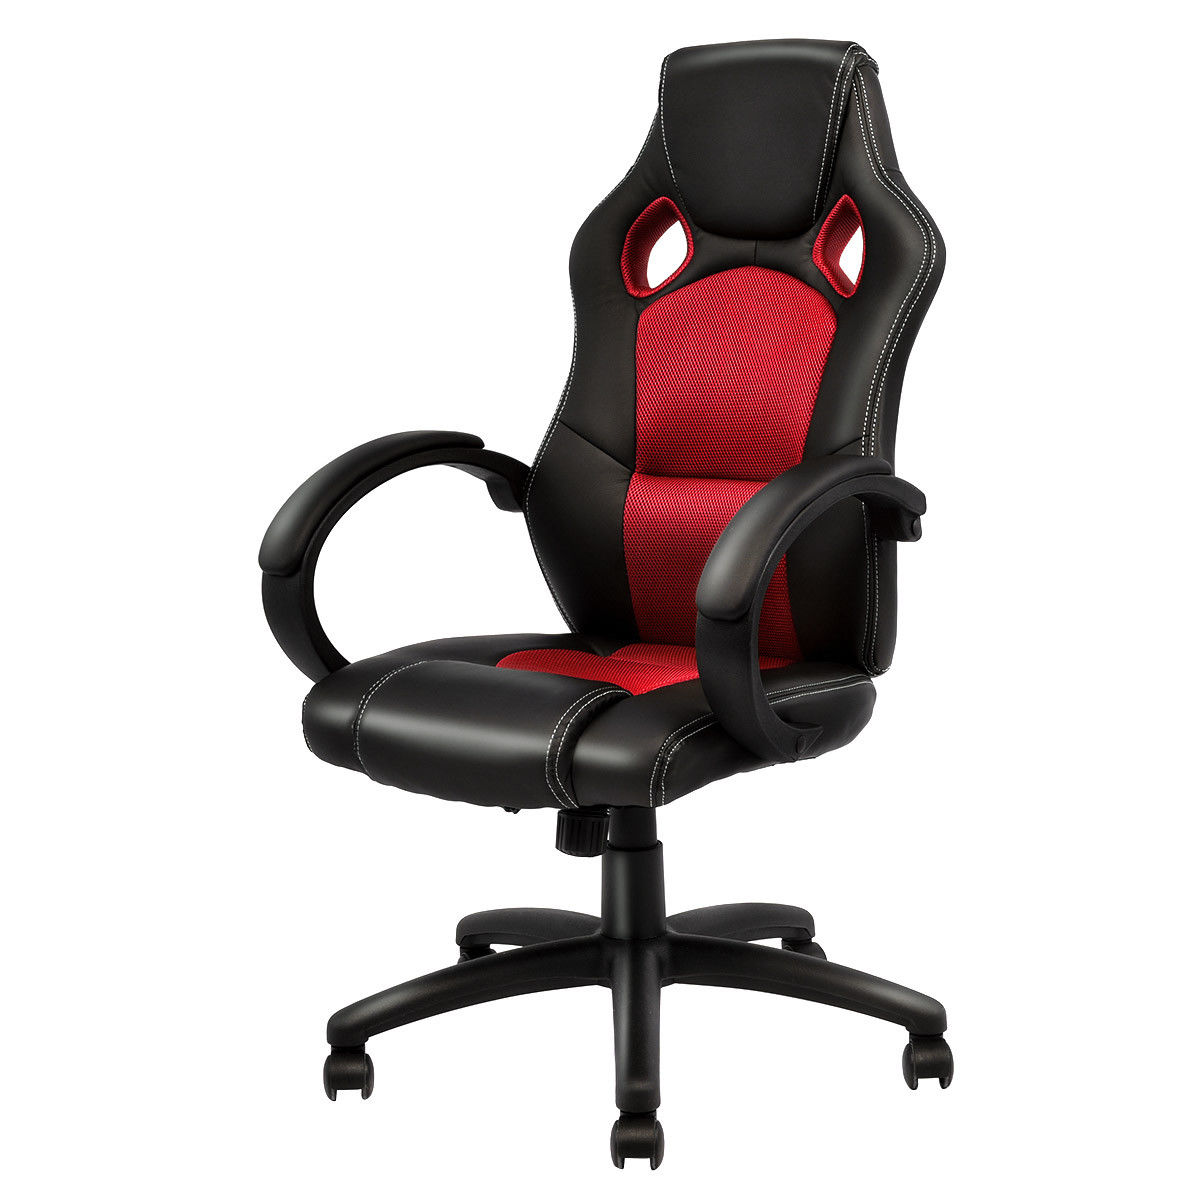 Giantex Modern Office Chair Racing High Back Gaming Chair Ergonomic Computer Desk Armchair Office Furniture HW54590RE 240340 high quality back pillow office chair 3d handrail function computer household ergonomic chair 360 degree rotating seat